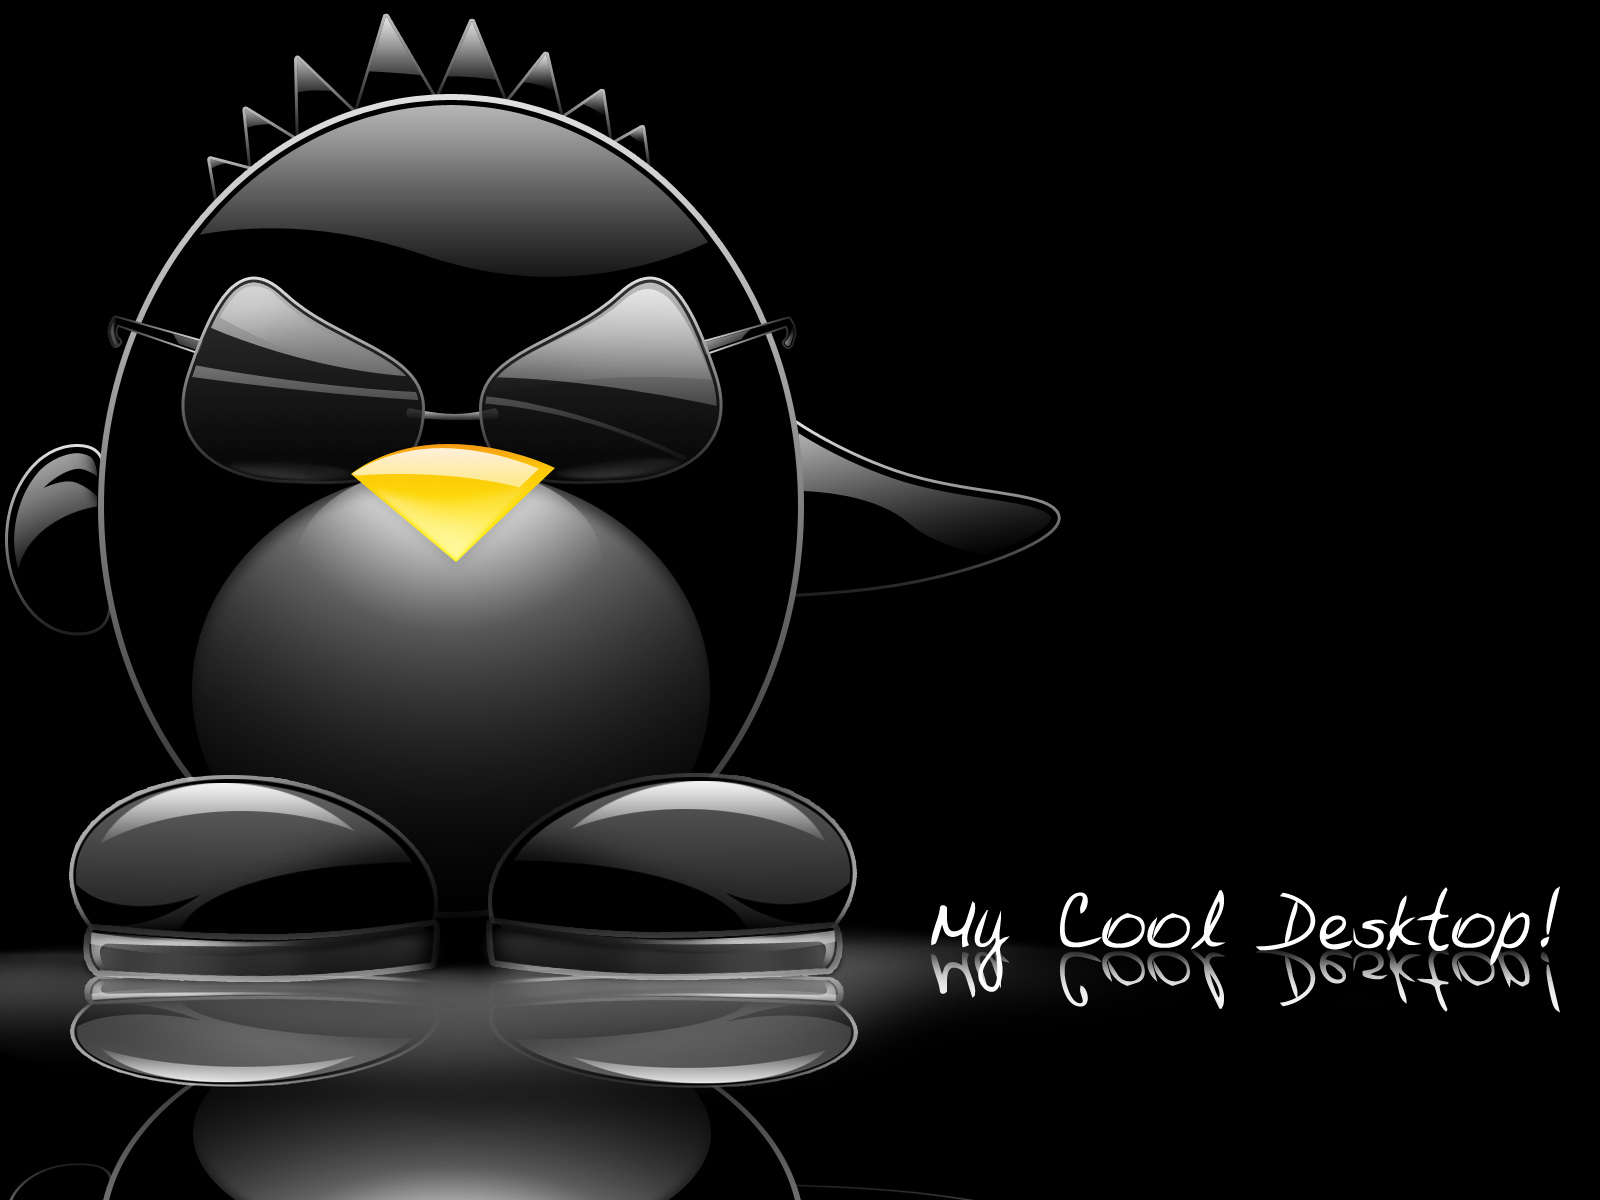 Get Cool and Animated Wallpaper for Online 1600x1200